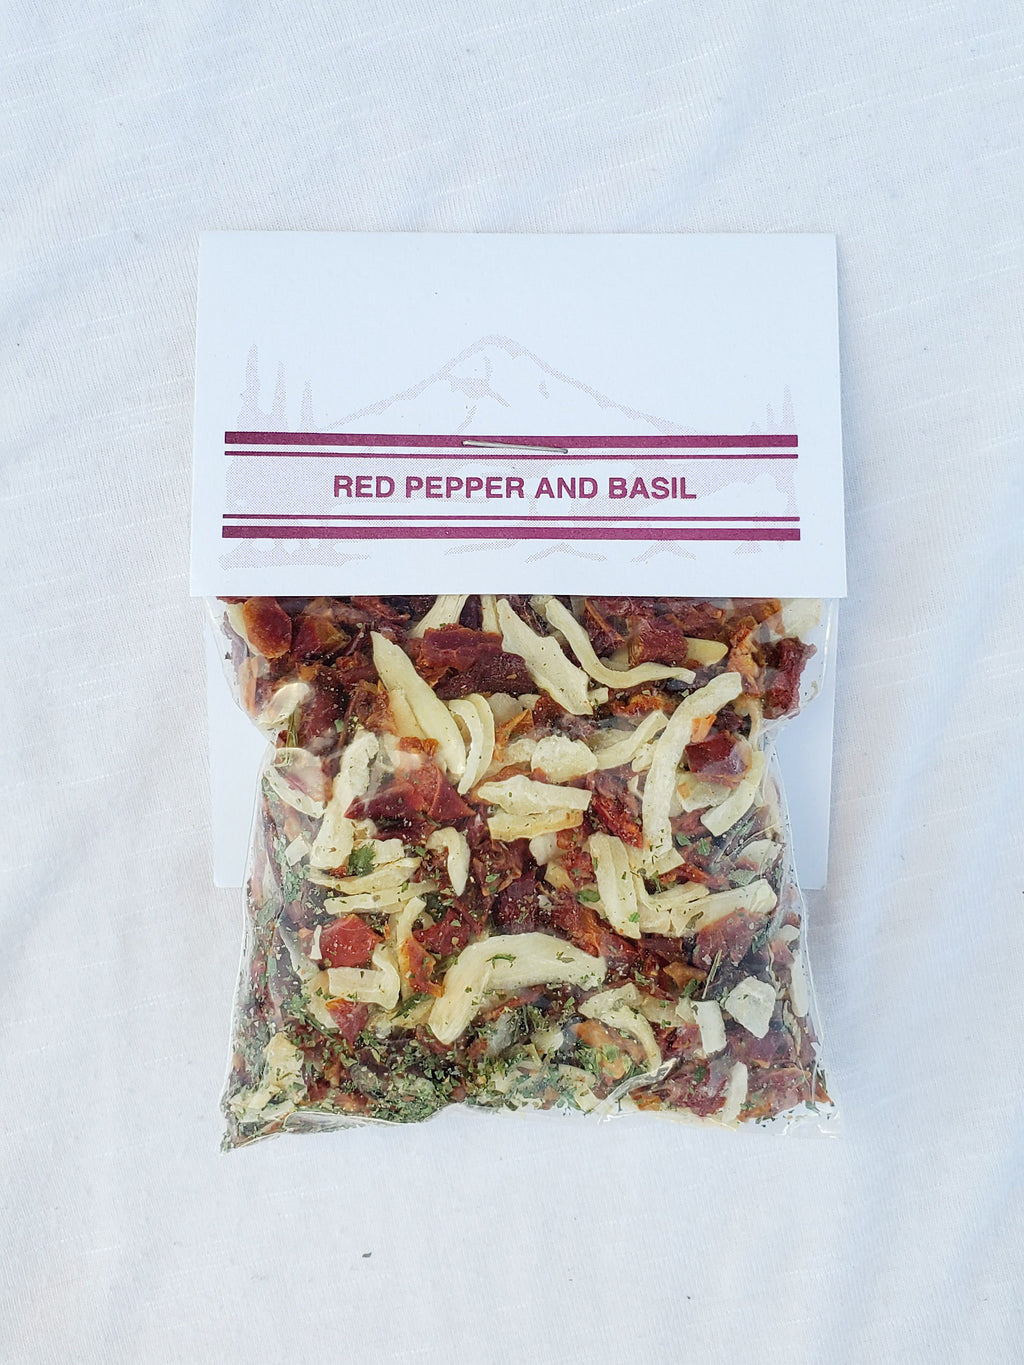 Northwest Spices - Red Pepper and Basil Seasoning